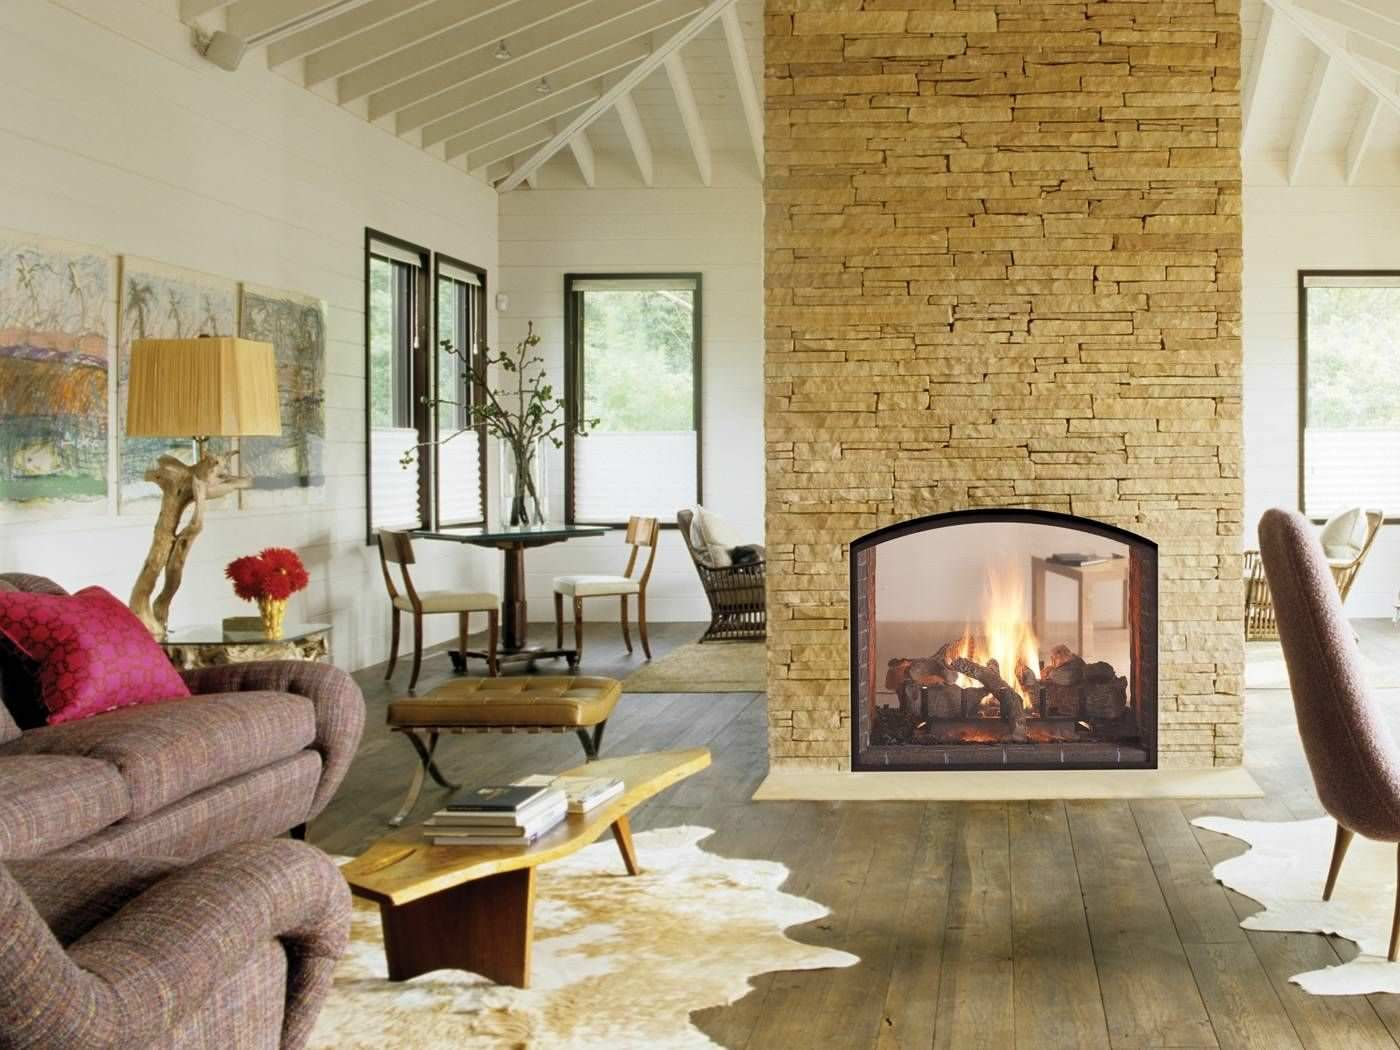 Ferguson Fireplace Inspirational Fireplace Gallery Of West Michigan Fireplacegallerywm On